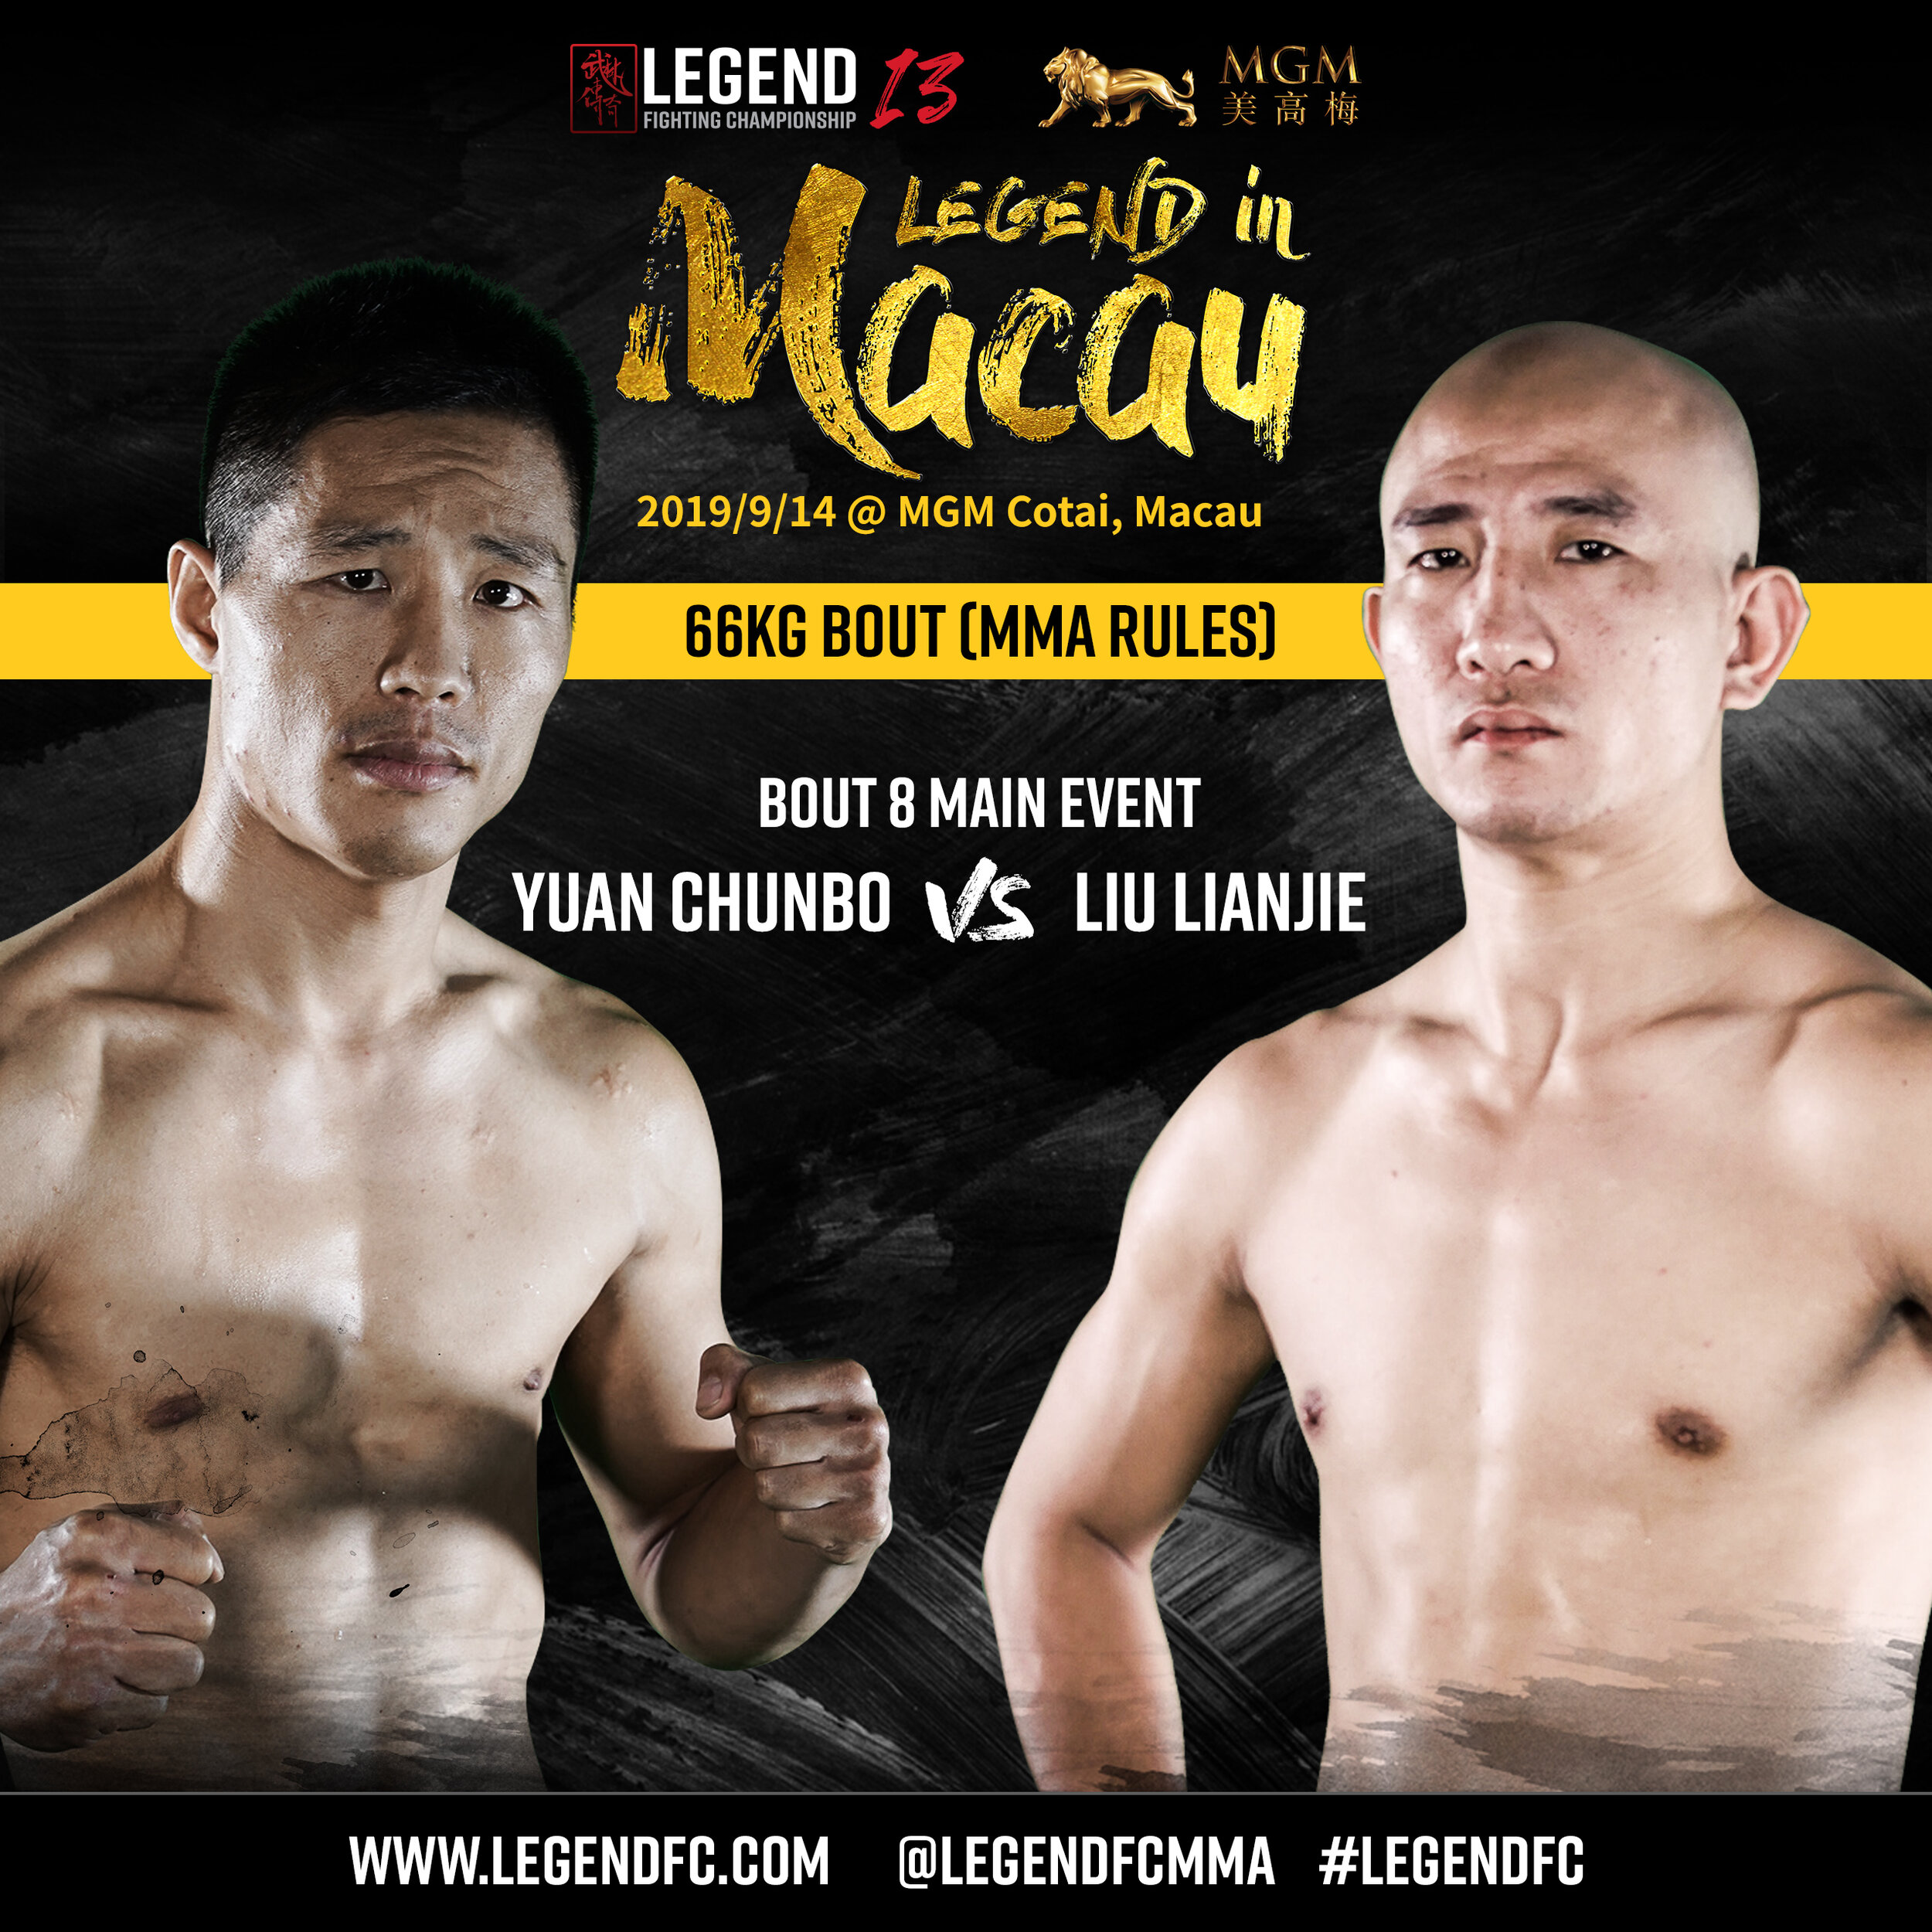 Yuan Chunbo VS Liu Lianjie   In the main event of Legend 13, knockout artist Liu Lian Jie returns to meet China's top submission specialist Yuan Chunbo in a classic striker vs grappler match-up.  The two competitors were originally due to clash in 2016, but an injured Yuan was forced to withdraw from the highly anticipated bout. They are now set to do battle inside the MGM Theatre on 14 September.  Hailing from Southeast China and living in Beijing, Liu is a veteran of Chinese MMA. Trained in the famed Shaolin Temple, Liu has since established himself as a knockout artist with aggressive ground-and-pound, fast hands and a solid wrestling pedigree.  He comes to Legend 13 riding a three-fight win streak, his most recent being a split-decision win over Du Li Le at Legend 12.  Hailing from China's Northeast and living in Guangzhou, Yuan defeated rising star Yi Zha at Legend 12 with an impressive heel hook submission that had Yi limping out of the cage before the second round, while Yuan had barely broken a sweat.-